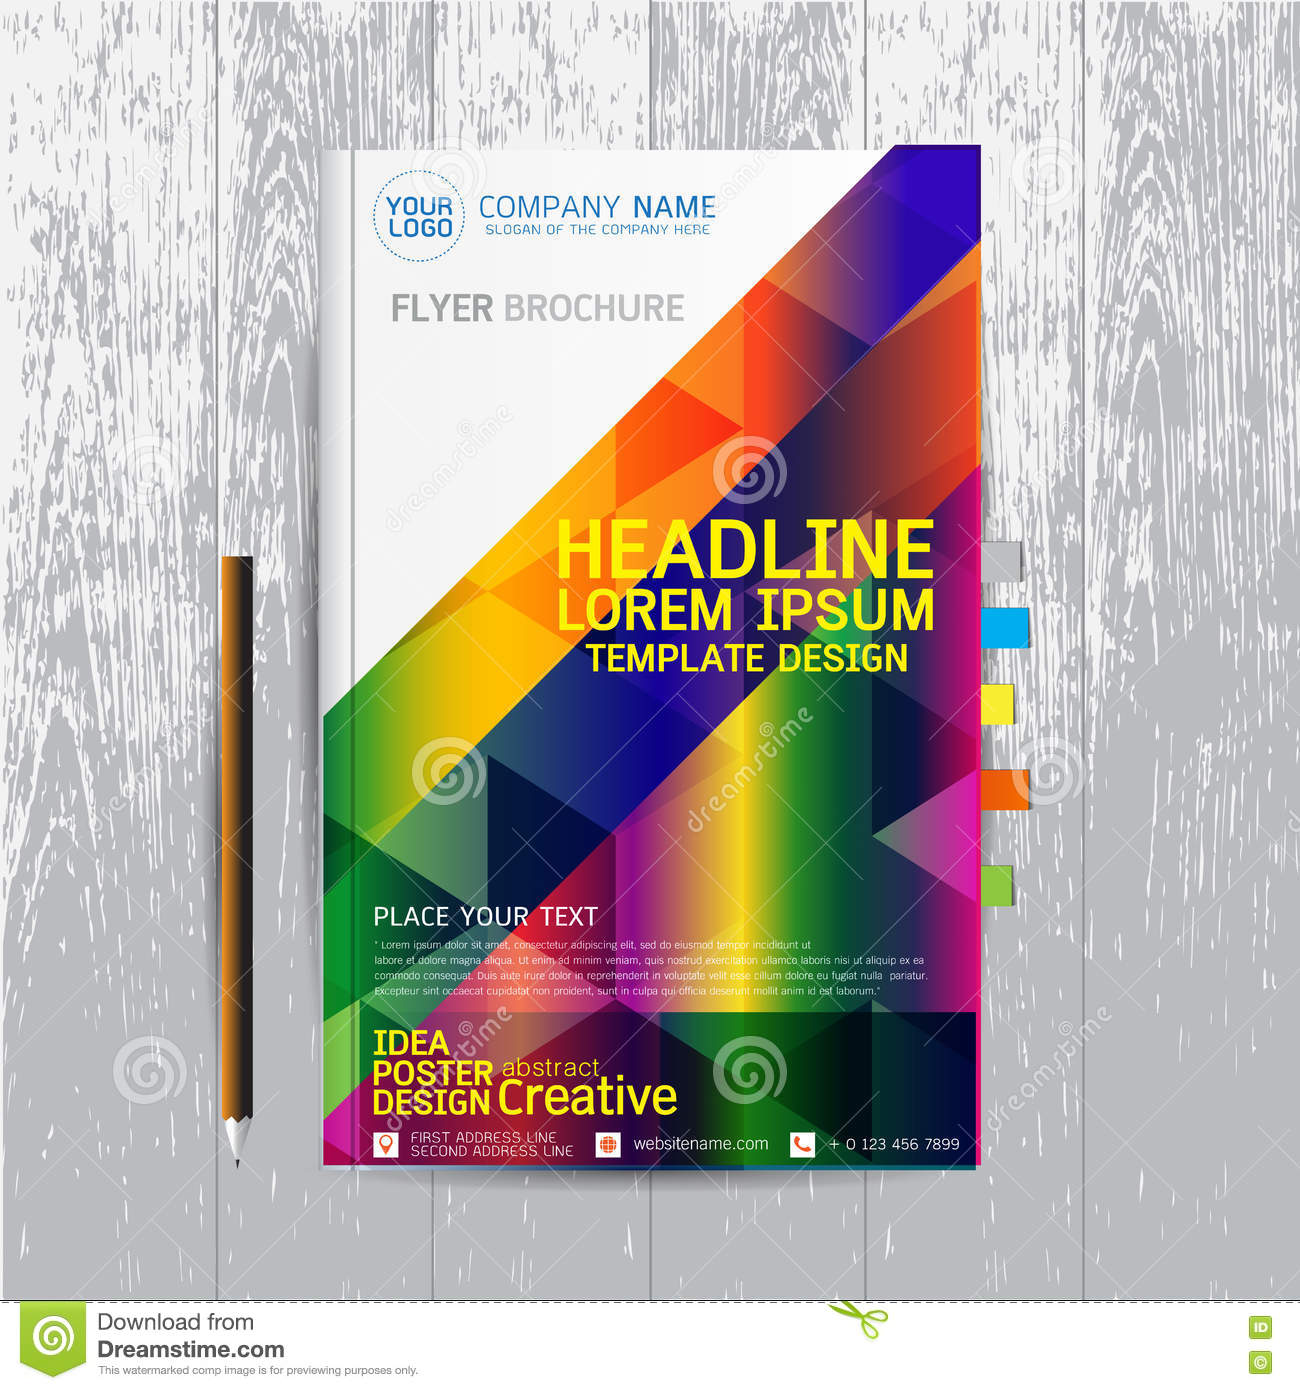 Poster design layout templates - Brochure Flyers Poster Design Layout Template In A4 Size With